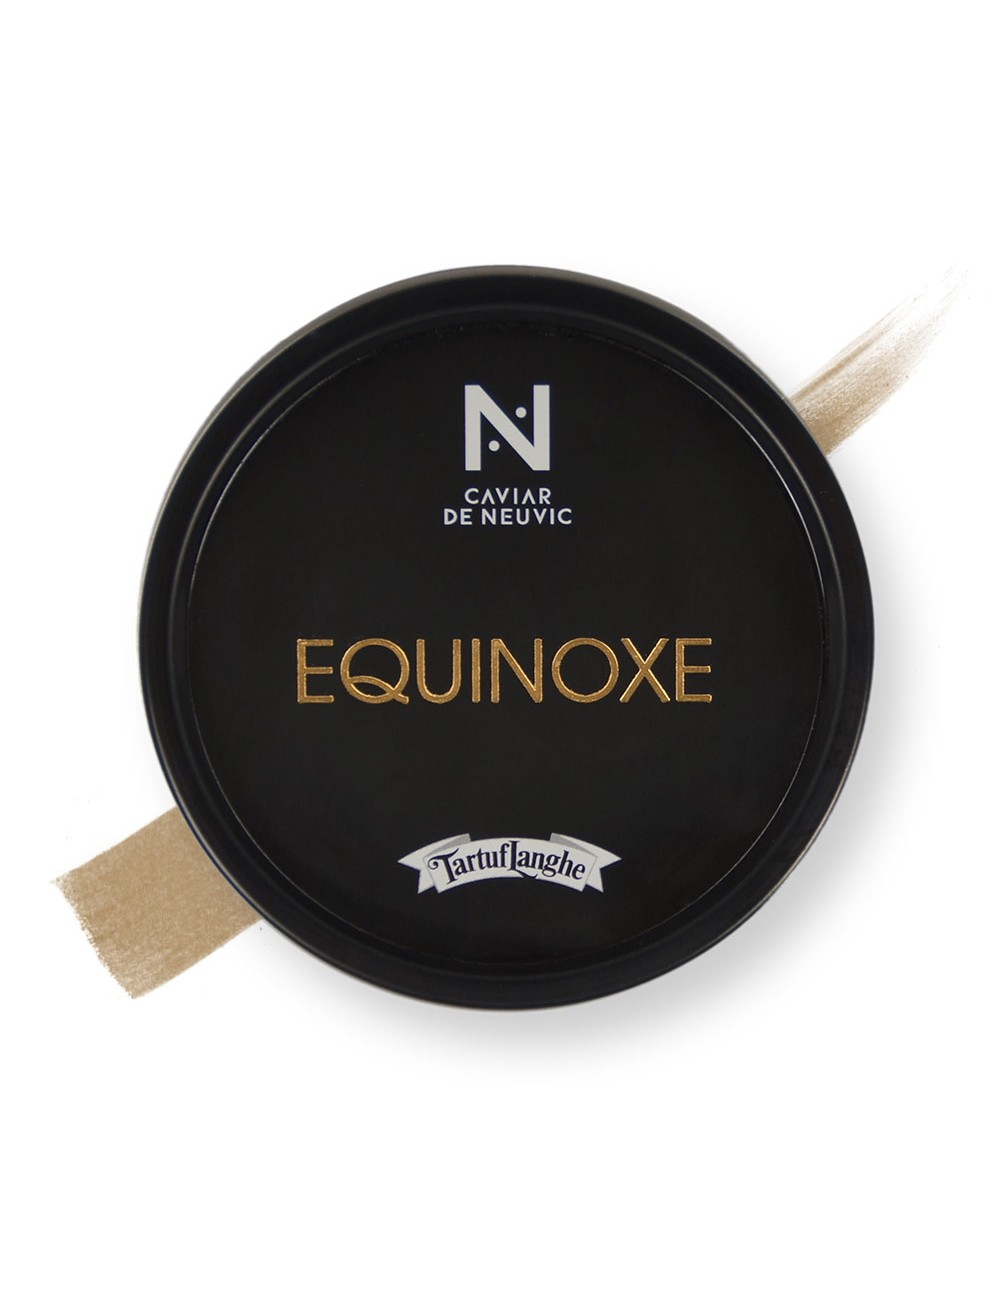 Equinoxe - L'audace absolue